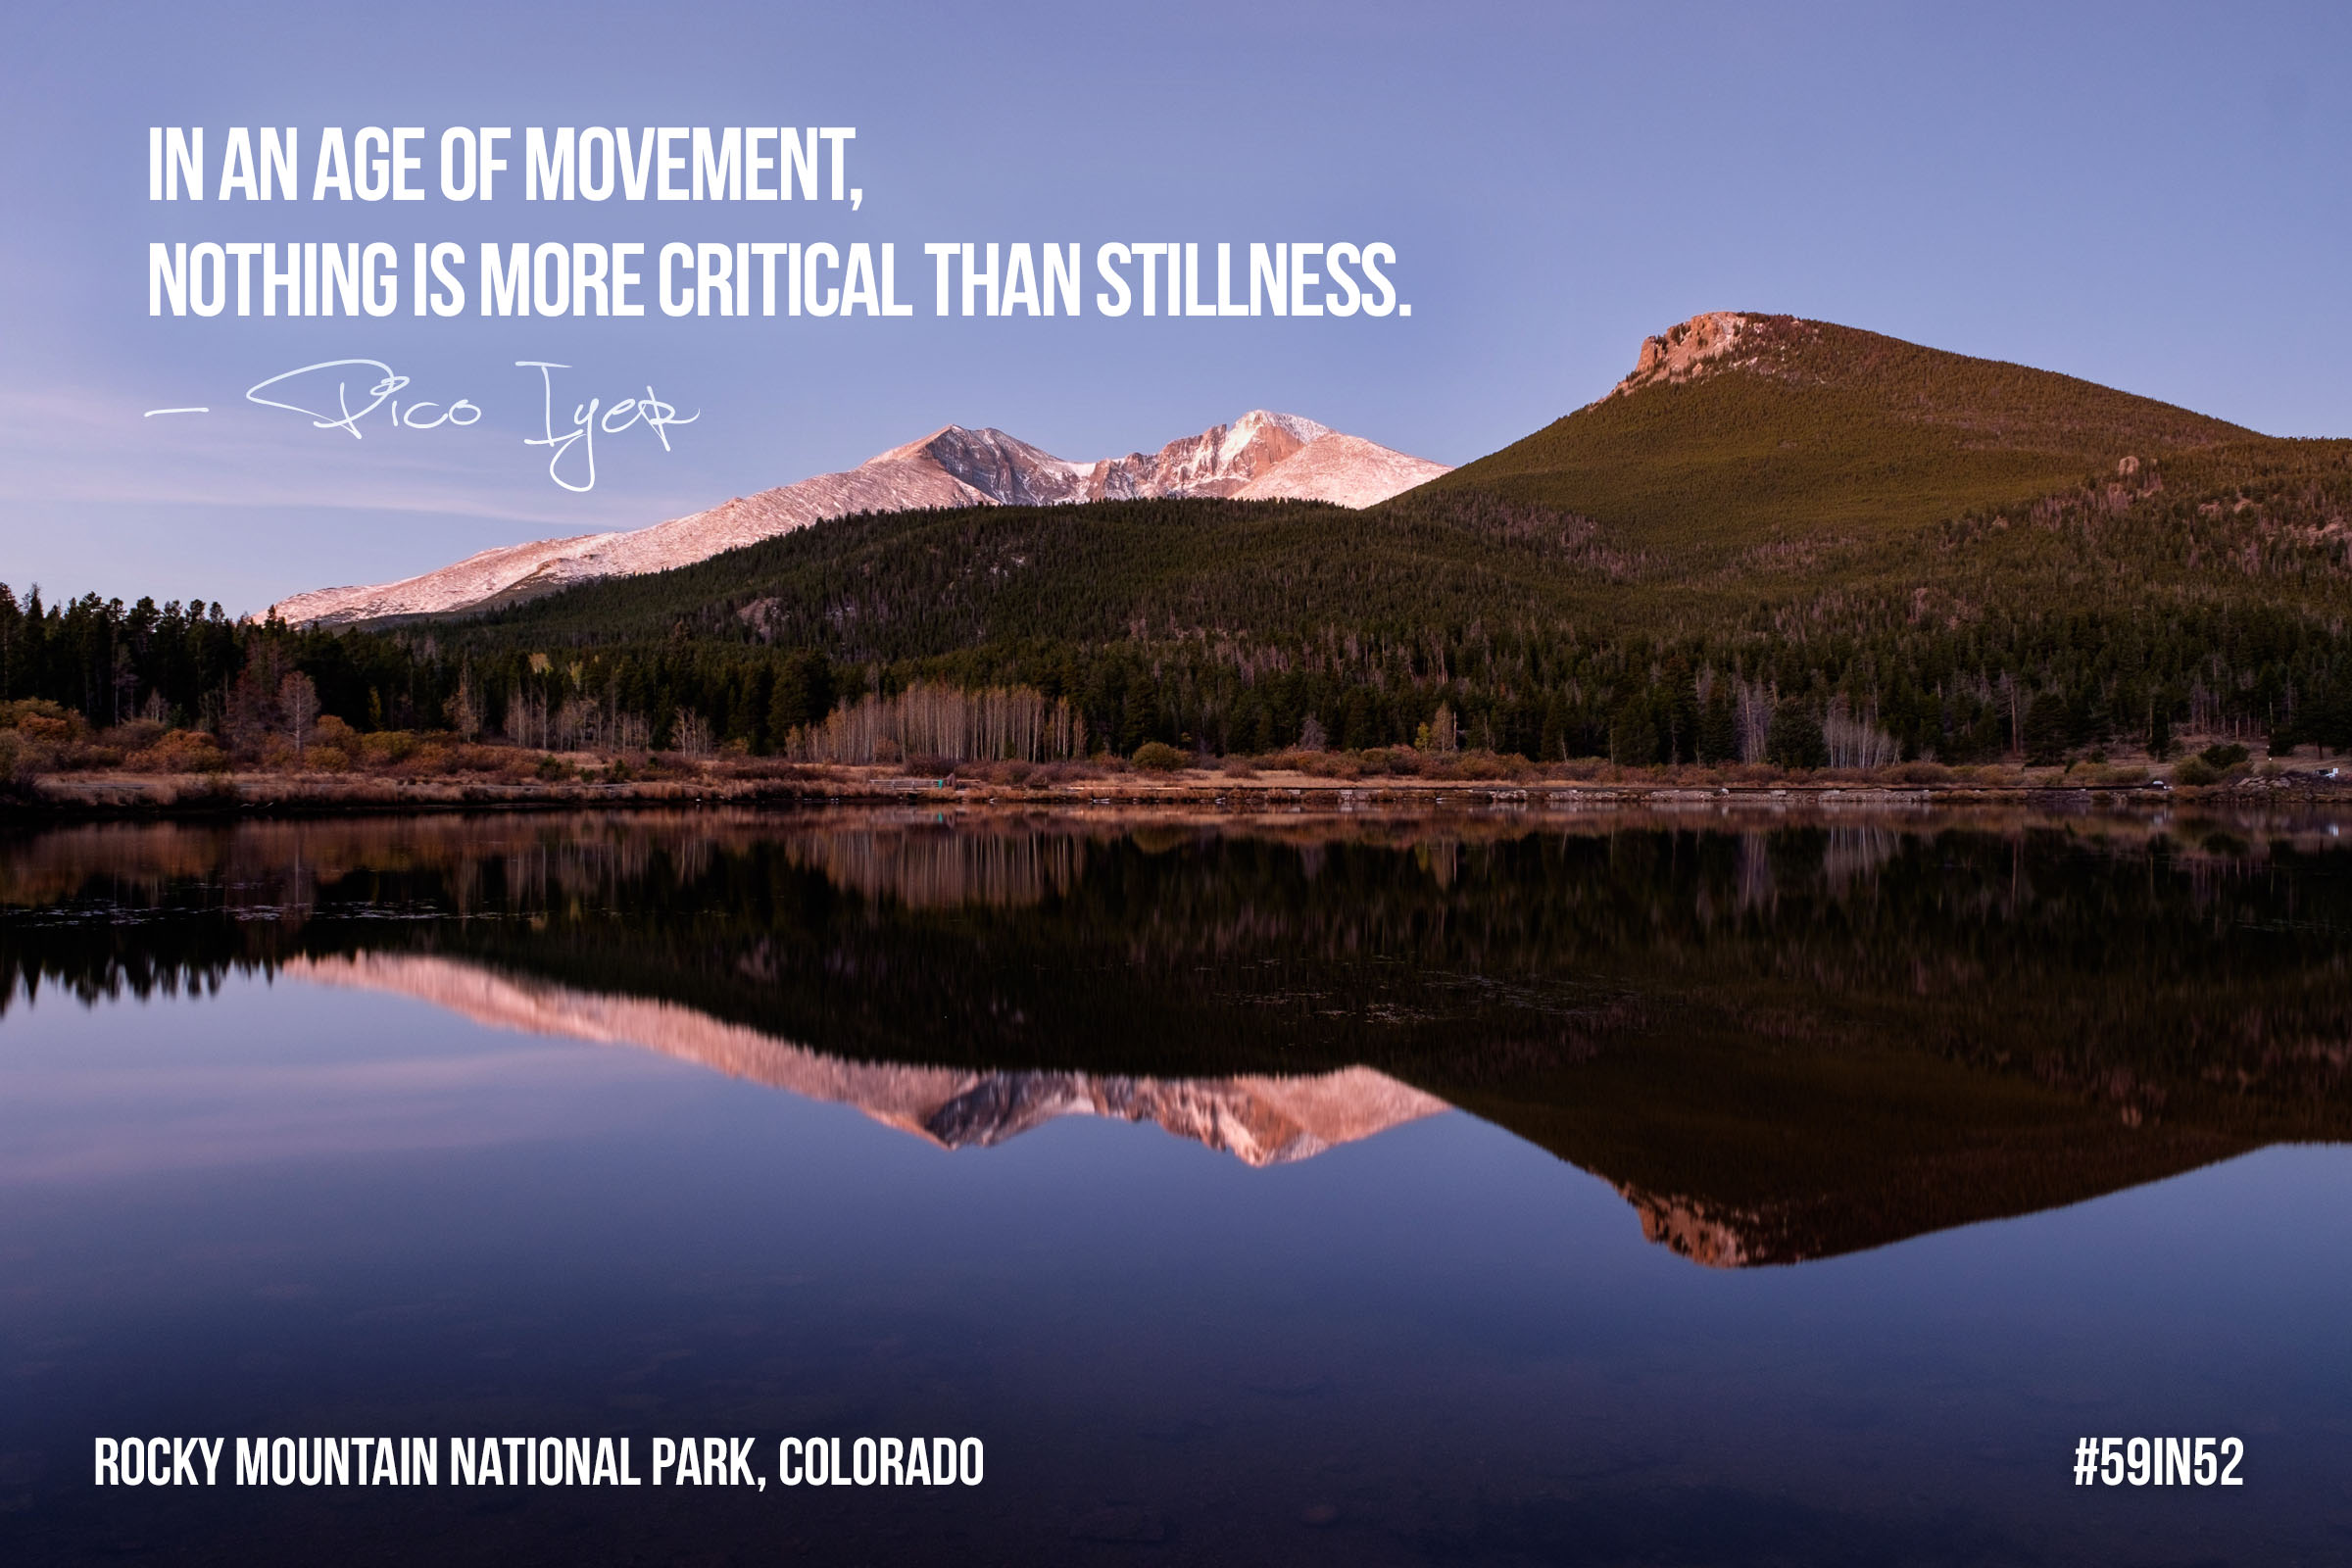 """In an age of movement, nothing is more critical than stillness."" - Pico Iyer"